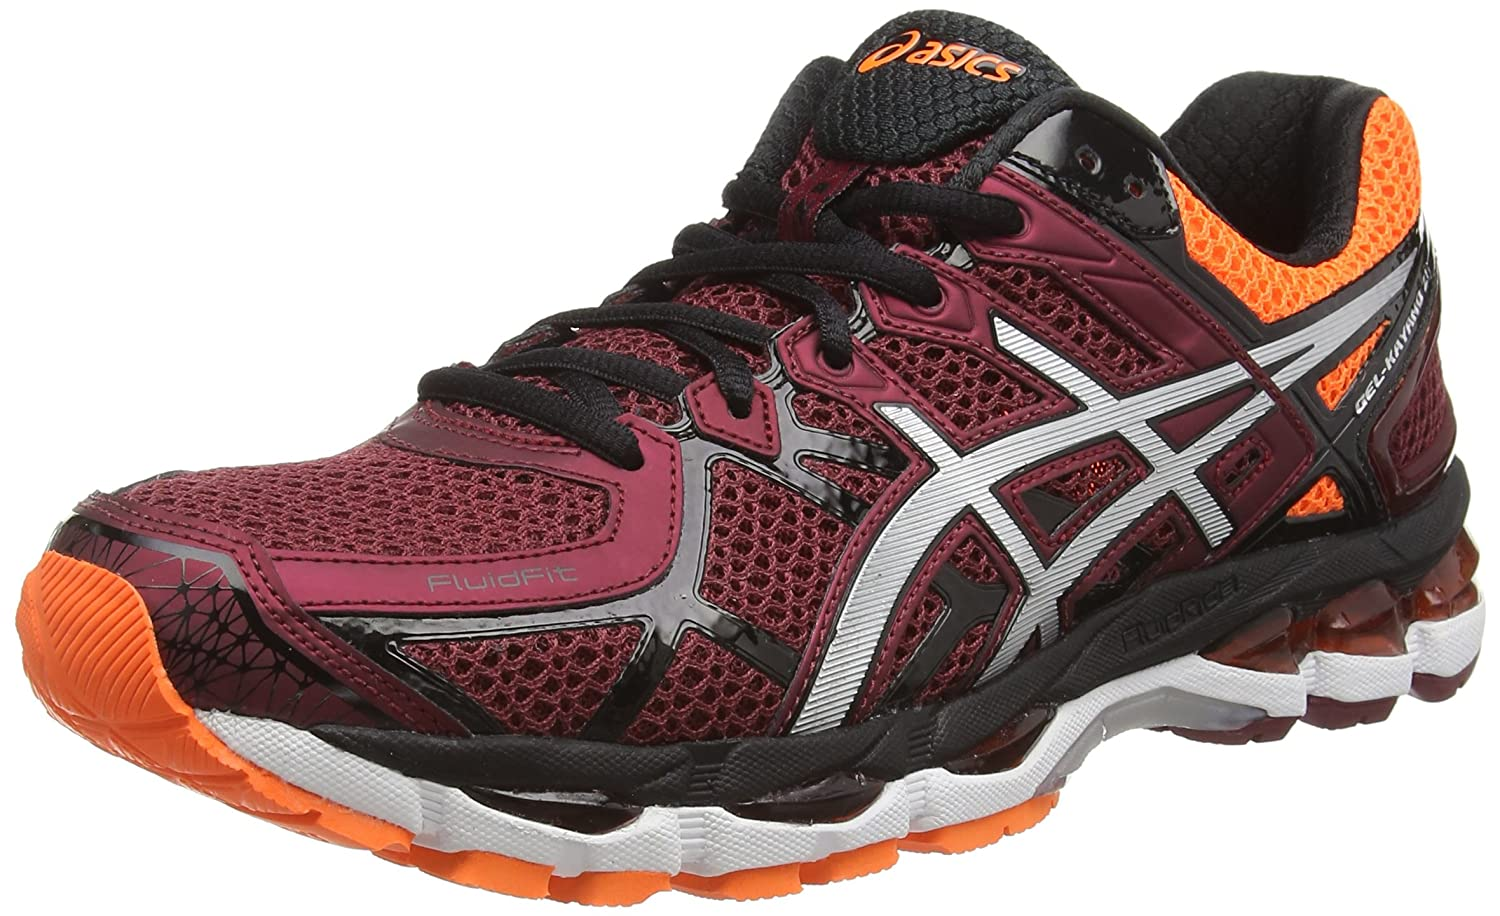 lower price with wholesale outlet stable quality ASICS Gel-Kayano 21, Men's Running Shoes